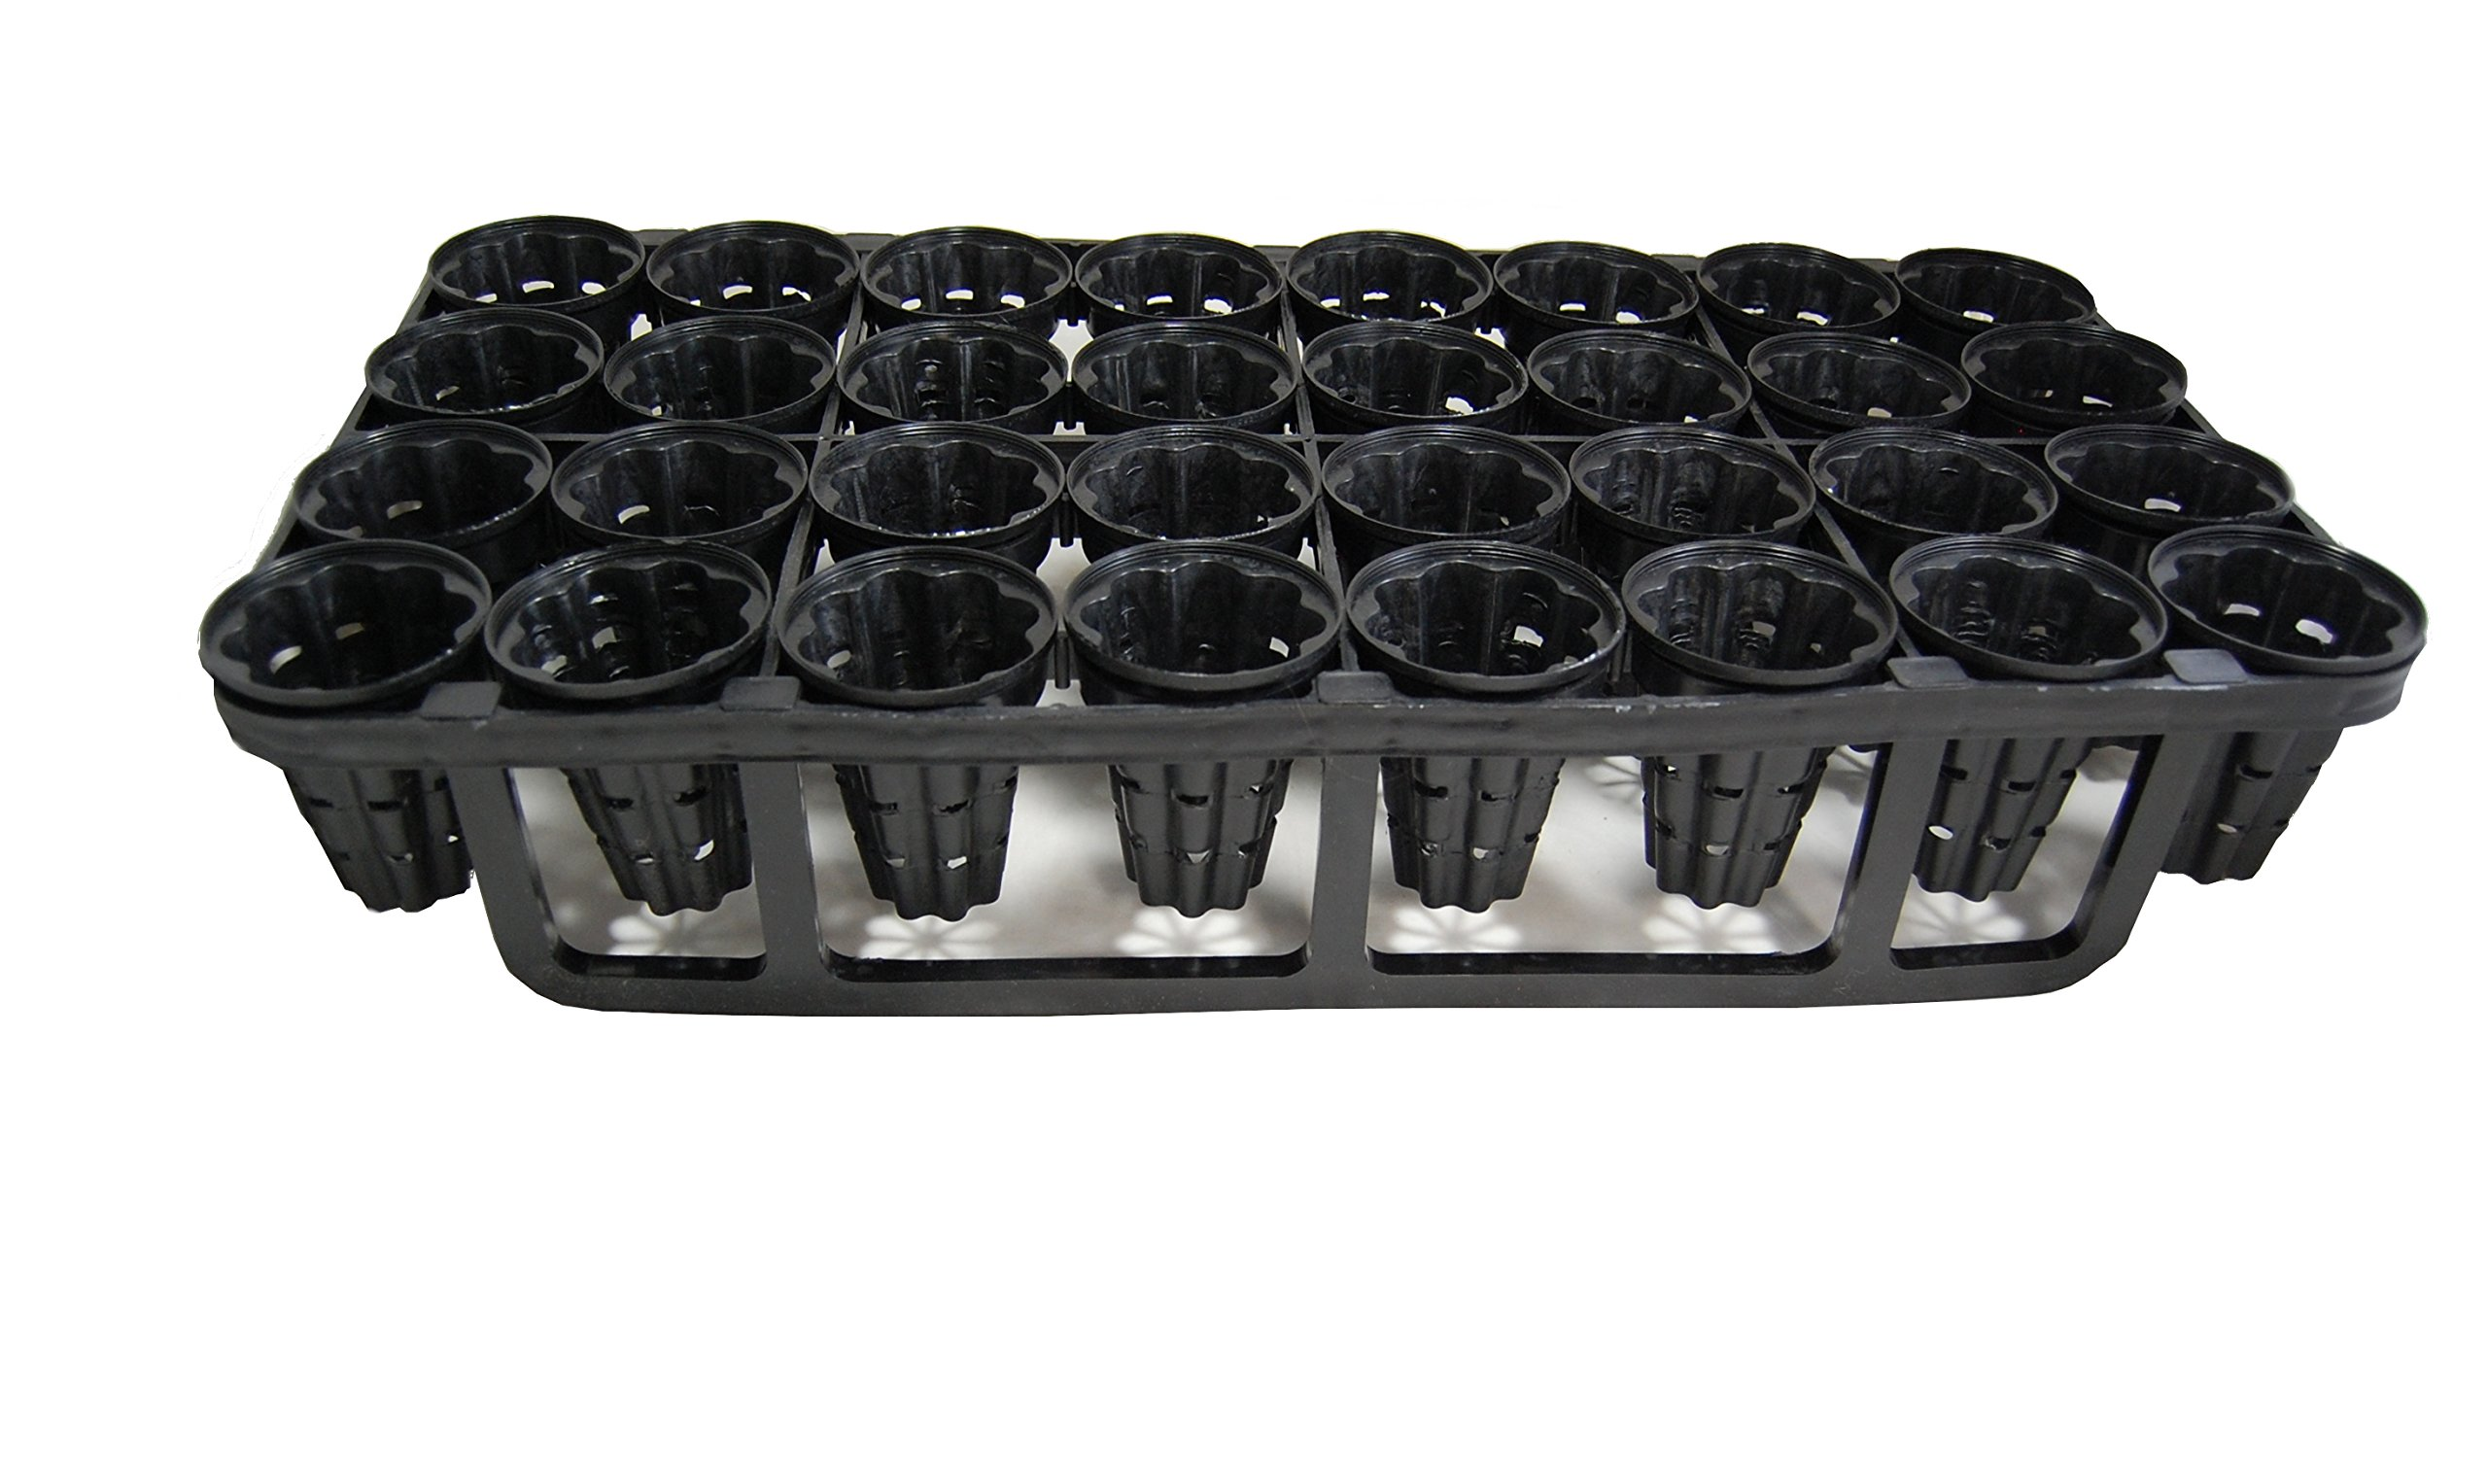 Air Root Pruning Pots & Tray - Heavy Duty - Accelerator - Propagation - 5 Trays &160 Pots 3'' in diameter x 4'' depth - 1 set by Grower's Solution